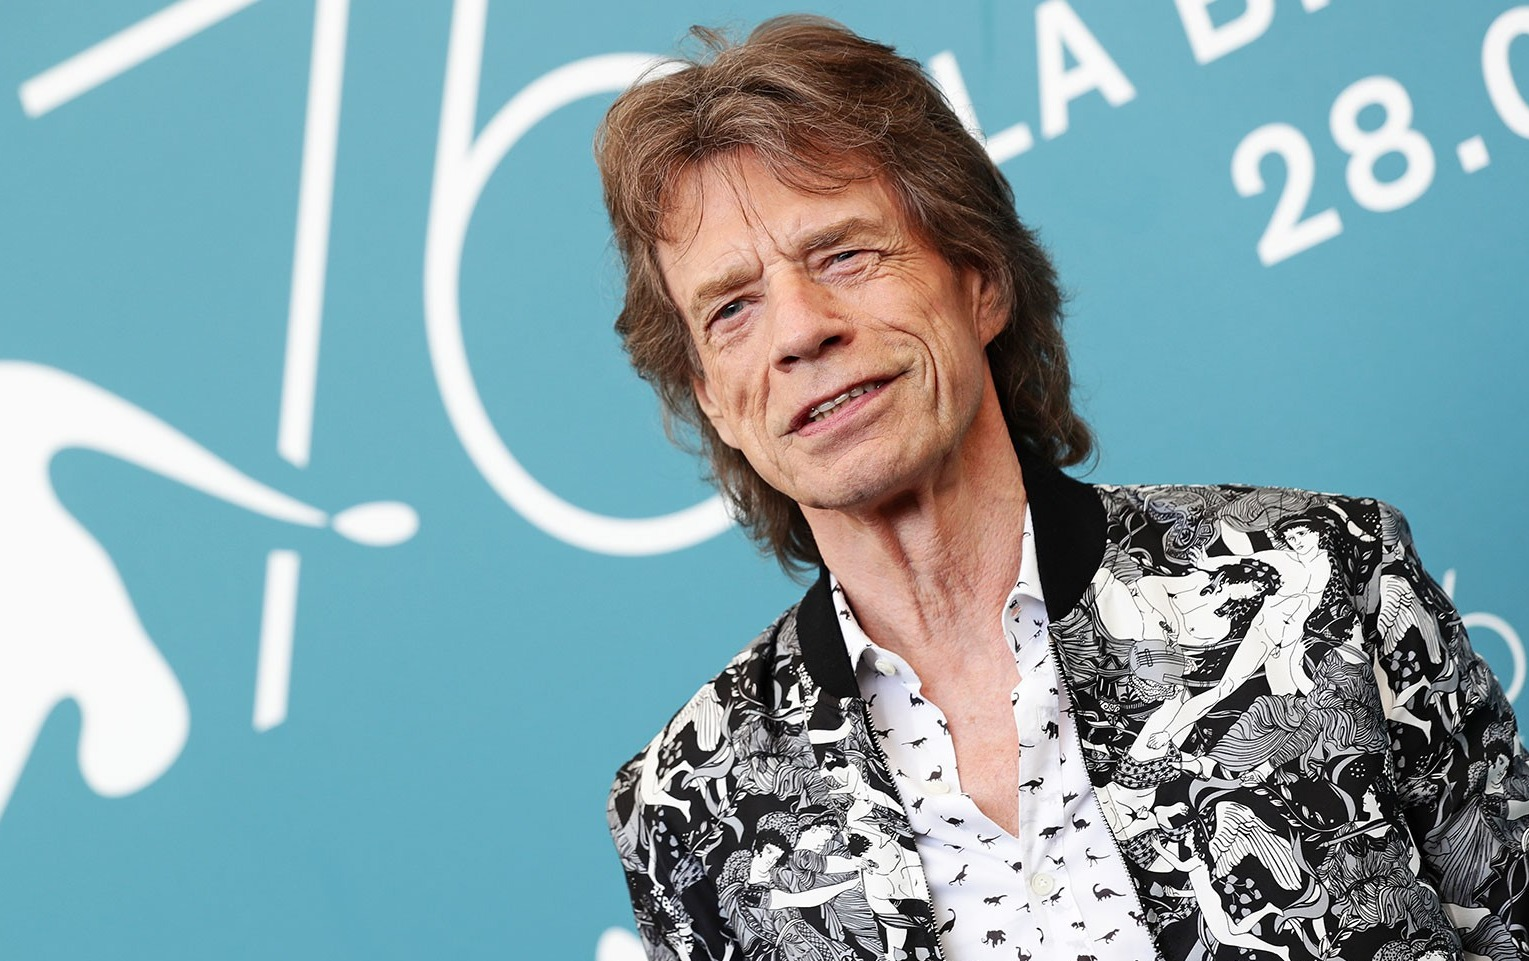 Mick Jagger Says He's 'Looking Forward to an America Free of Harsh Words and Name Calling' Following Biden's Win